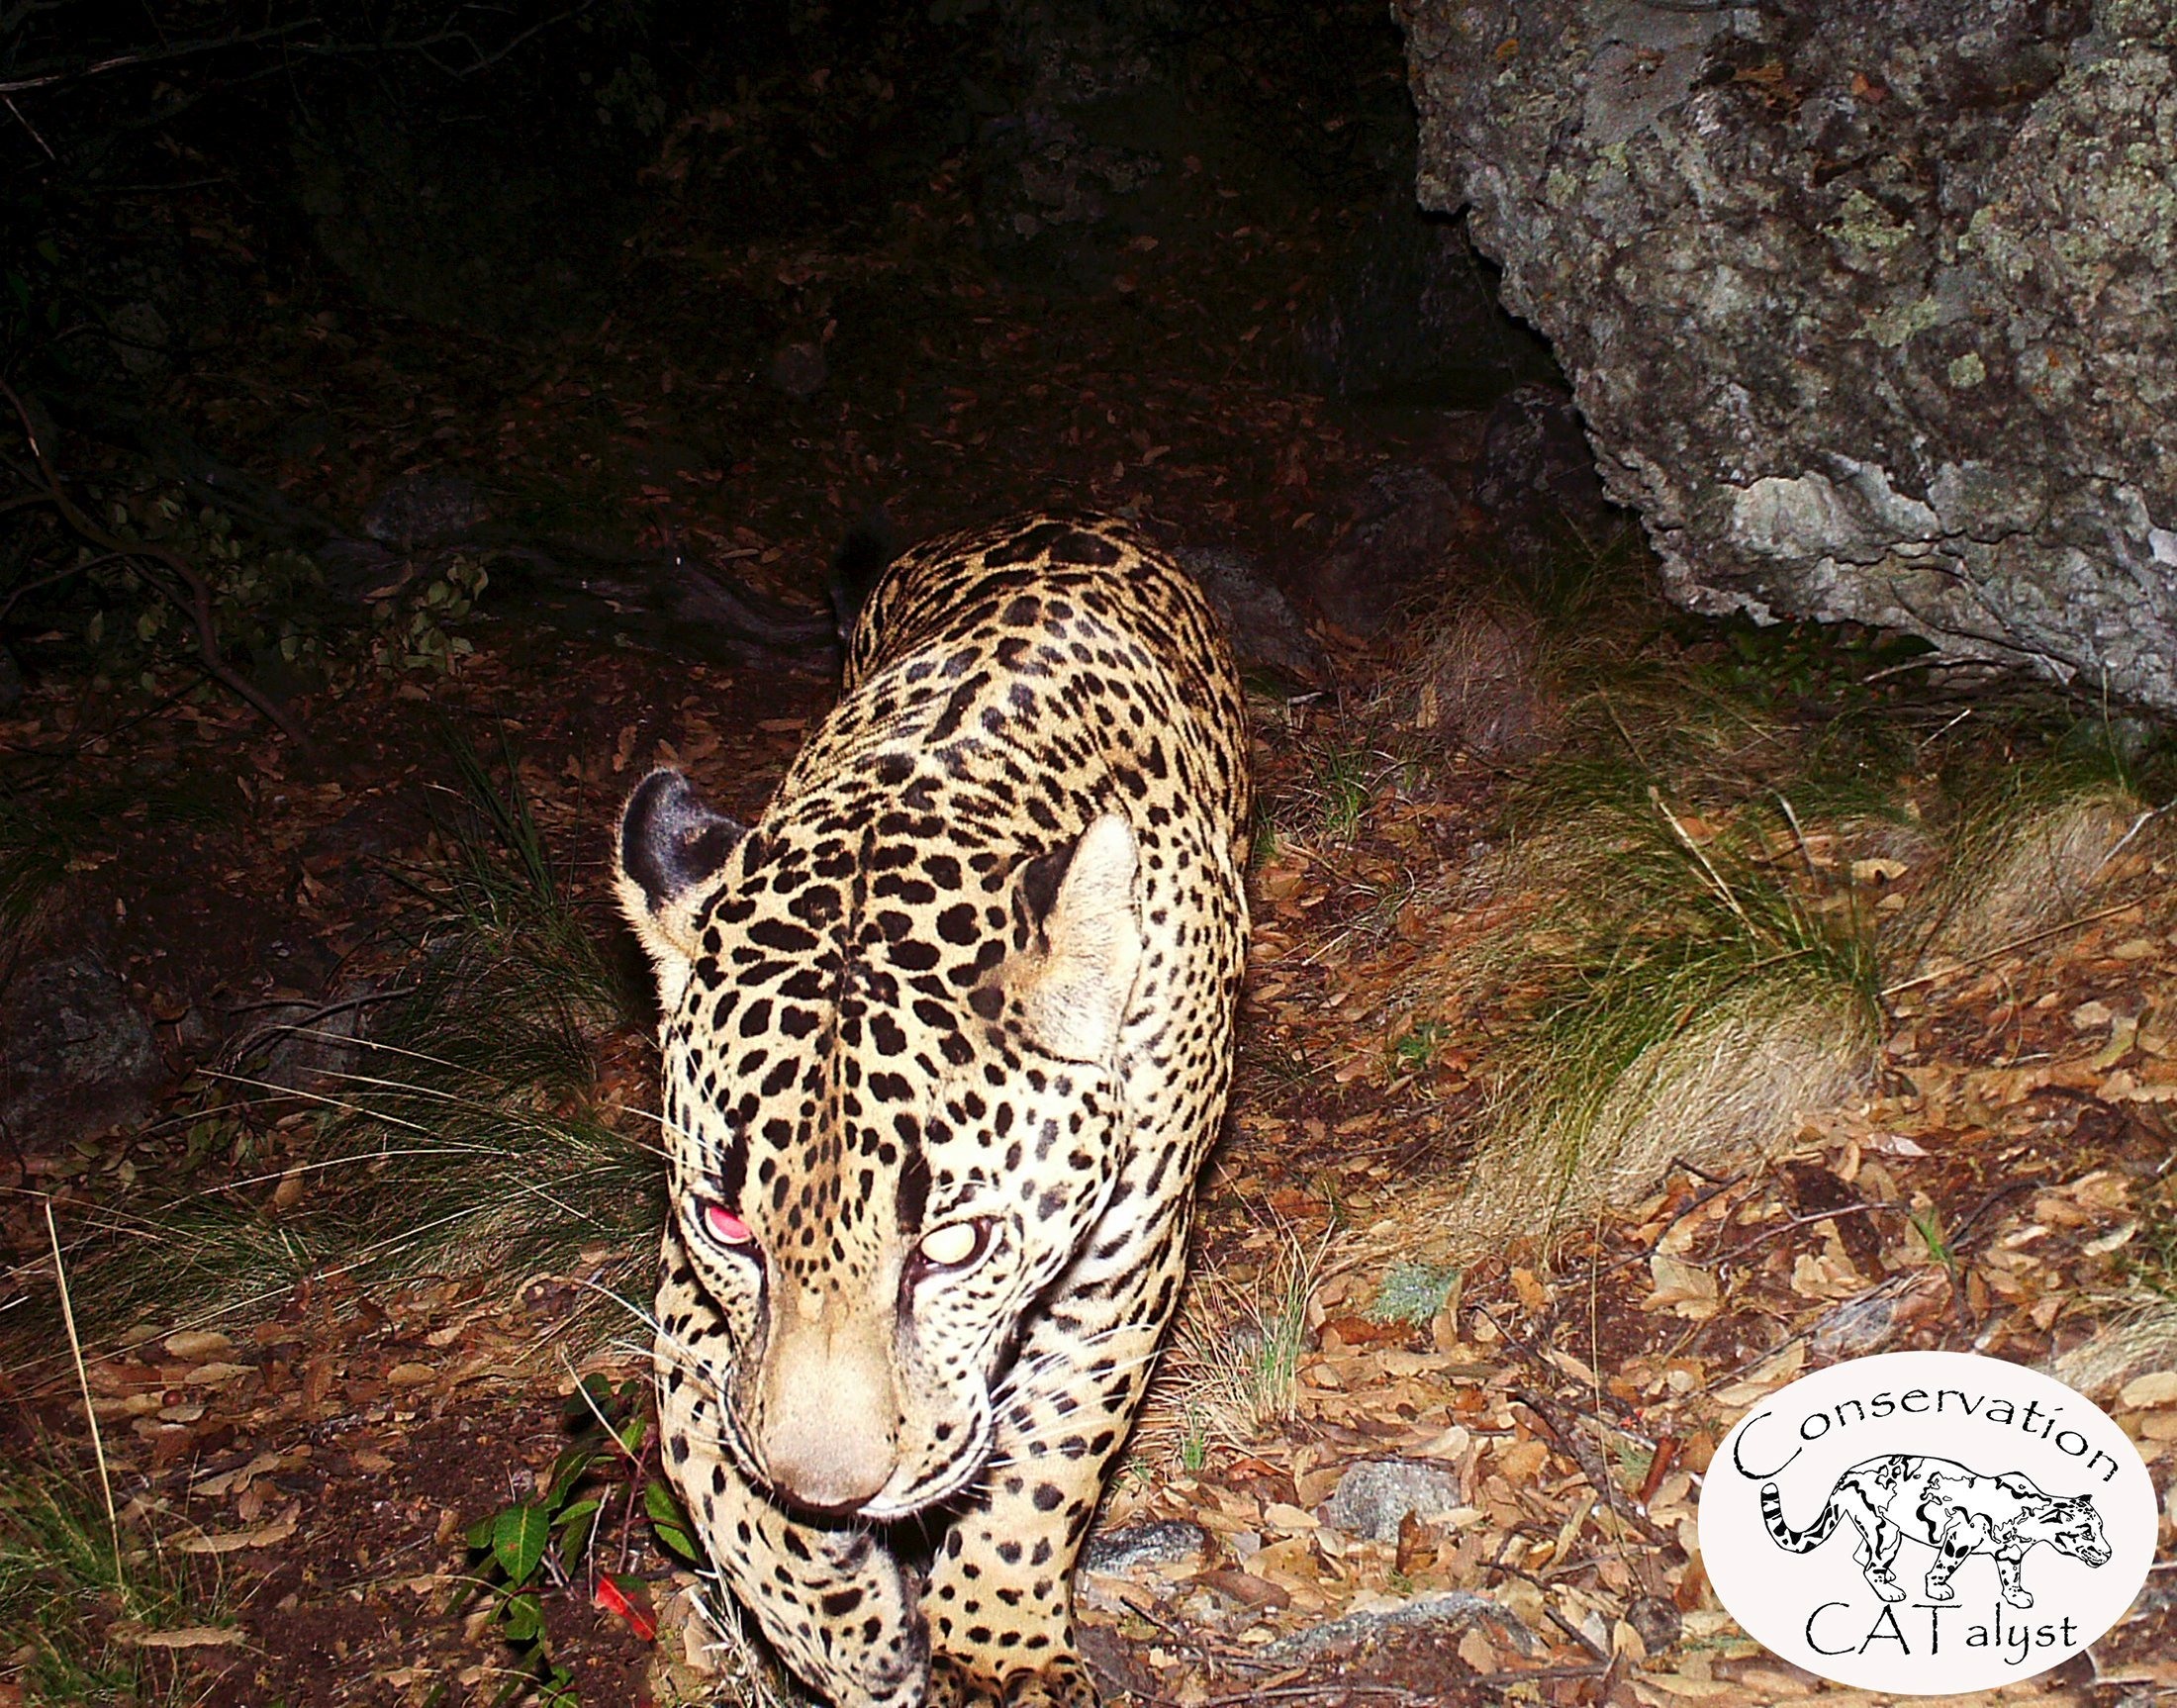 The only known wild jaguar currently in the United States is seen in an undated still image captured on a remote sensor camera in the Santa Rita Mountains near Tucson, Arizona, released by Conservation CATalyst and The Center for Biological Diversity. El Jefe, as the jaguar has come to be known in Tucson, has been photographed repeatedly by remote sensor cameras in the Santa Ritas over the past few years, according to a Center for Biological Diversity news release. REUTERS/Conservation CATalyst and Center for Biological Diversity/Handout via ReutersATTENTION EDITORS - THIS PICTURE WAS PROVIDED BY A THIRD PARTY. REUTERS IS UNABLE TO INDEPENDENTLY VERIFY THE AUTHENTICITY, CONTENT, LOCATION OR DATE OF THIS IMAGE. THIS PICTURE IS DISTRIBUTED EXACTLY AS RECEIVED BY REUTERS, AS A SERVICE TO CLIENTS. FOR EDITORIAL USE ONLY. NOT FOR SALE FOR MARKETING OR ADVERTISING CAMPAIGNS. FOR EDITORIAL USE ONLY. NO RESALES. NO ARCHIVE.